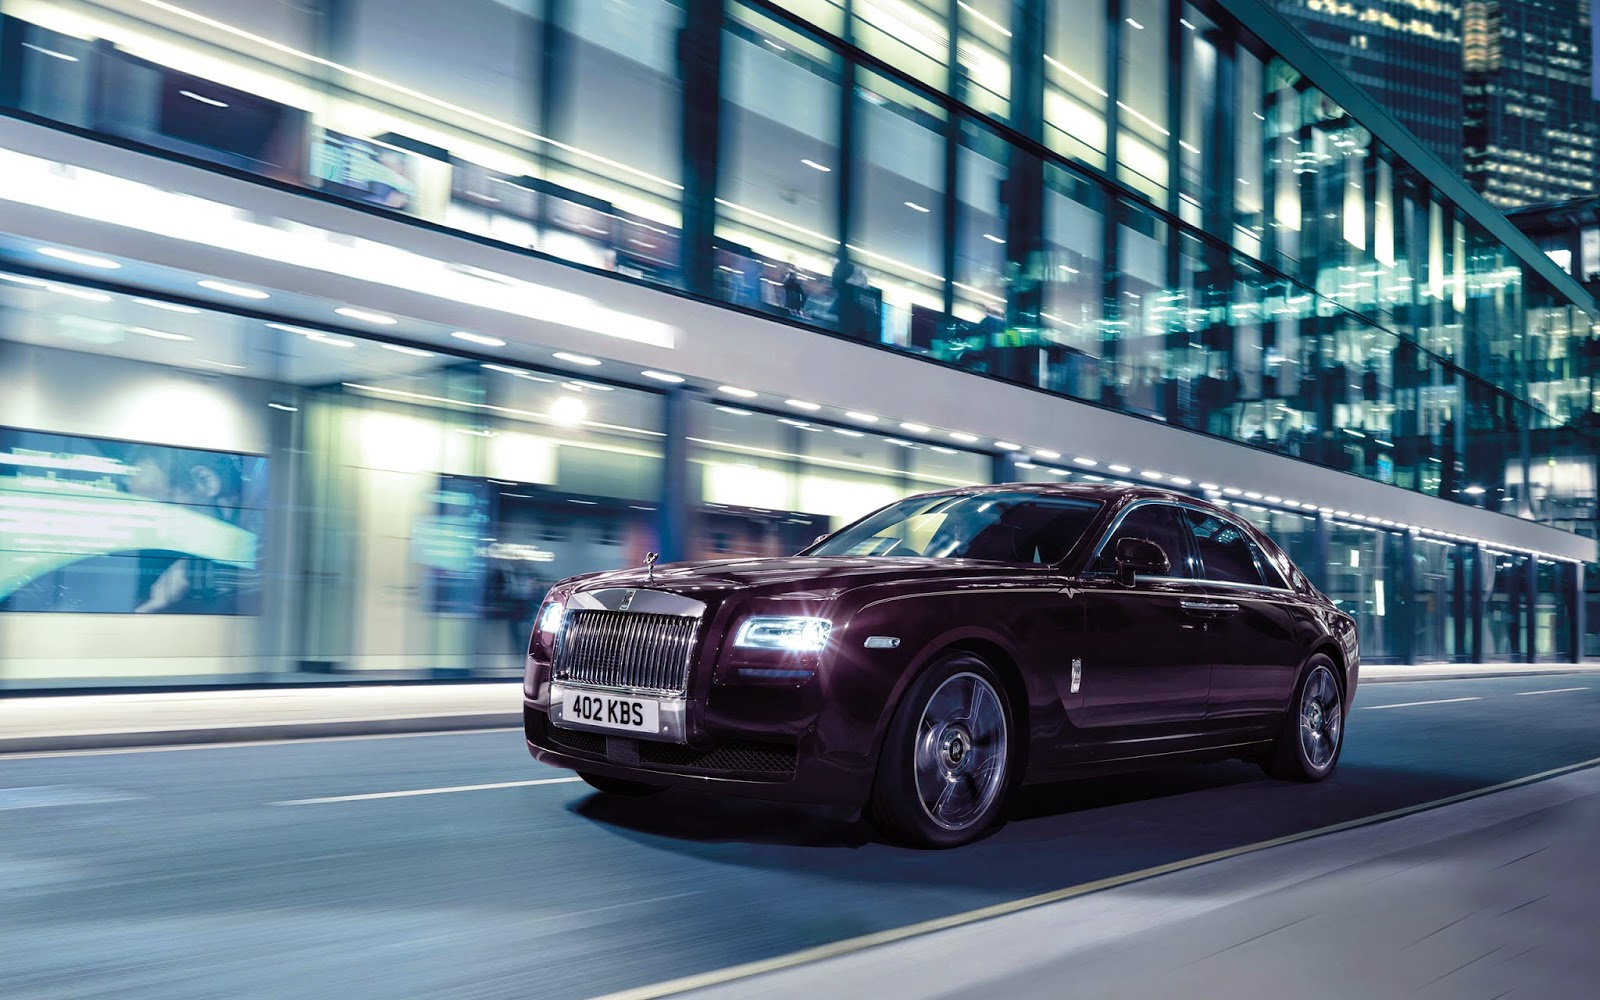 2015 Rolls-Royce Ghost Series latest Wallpaper